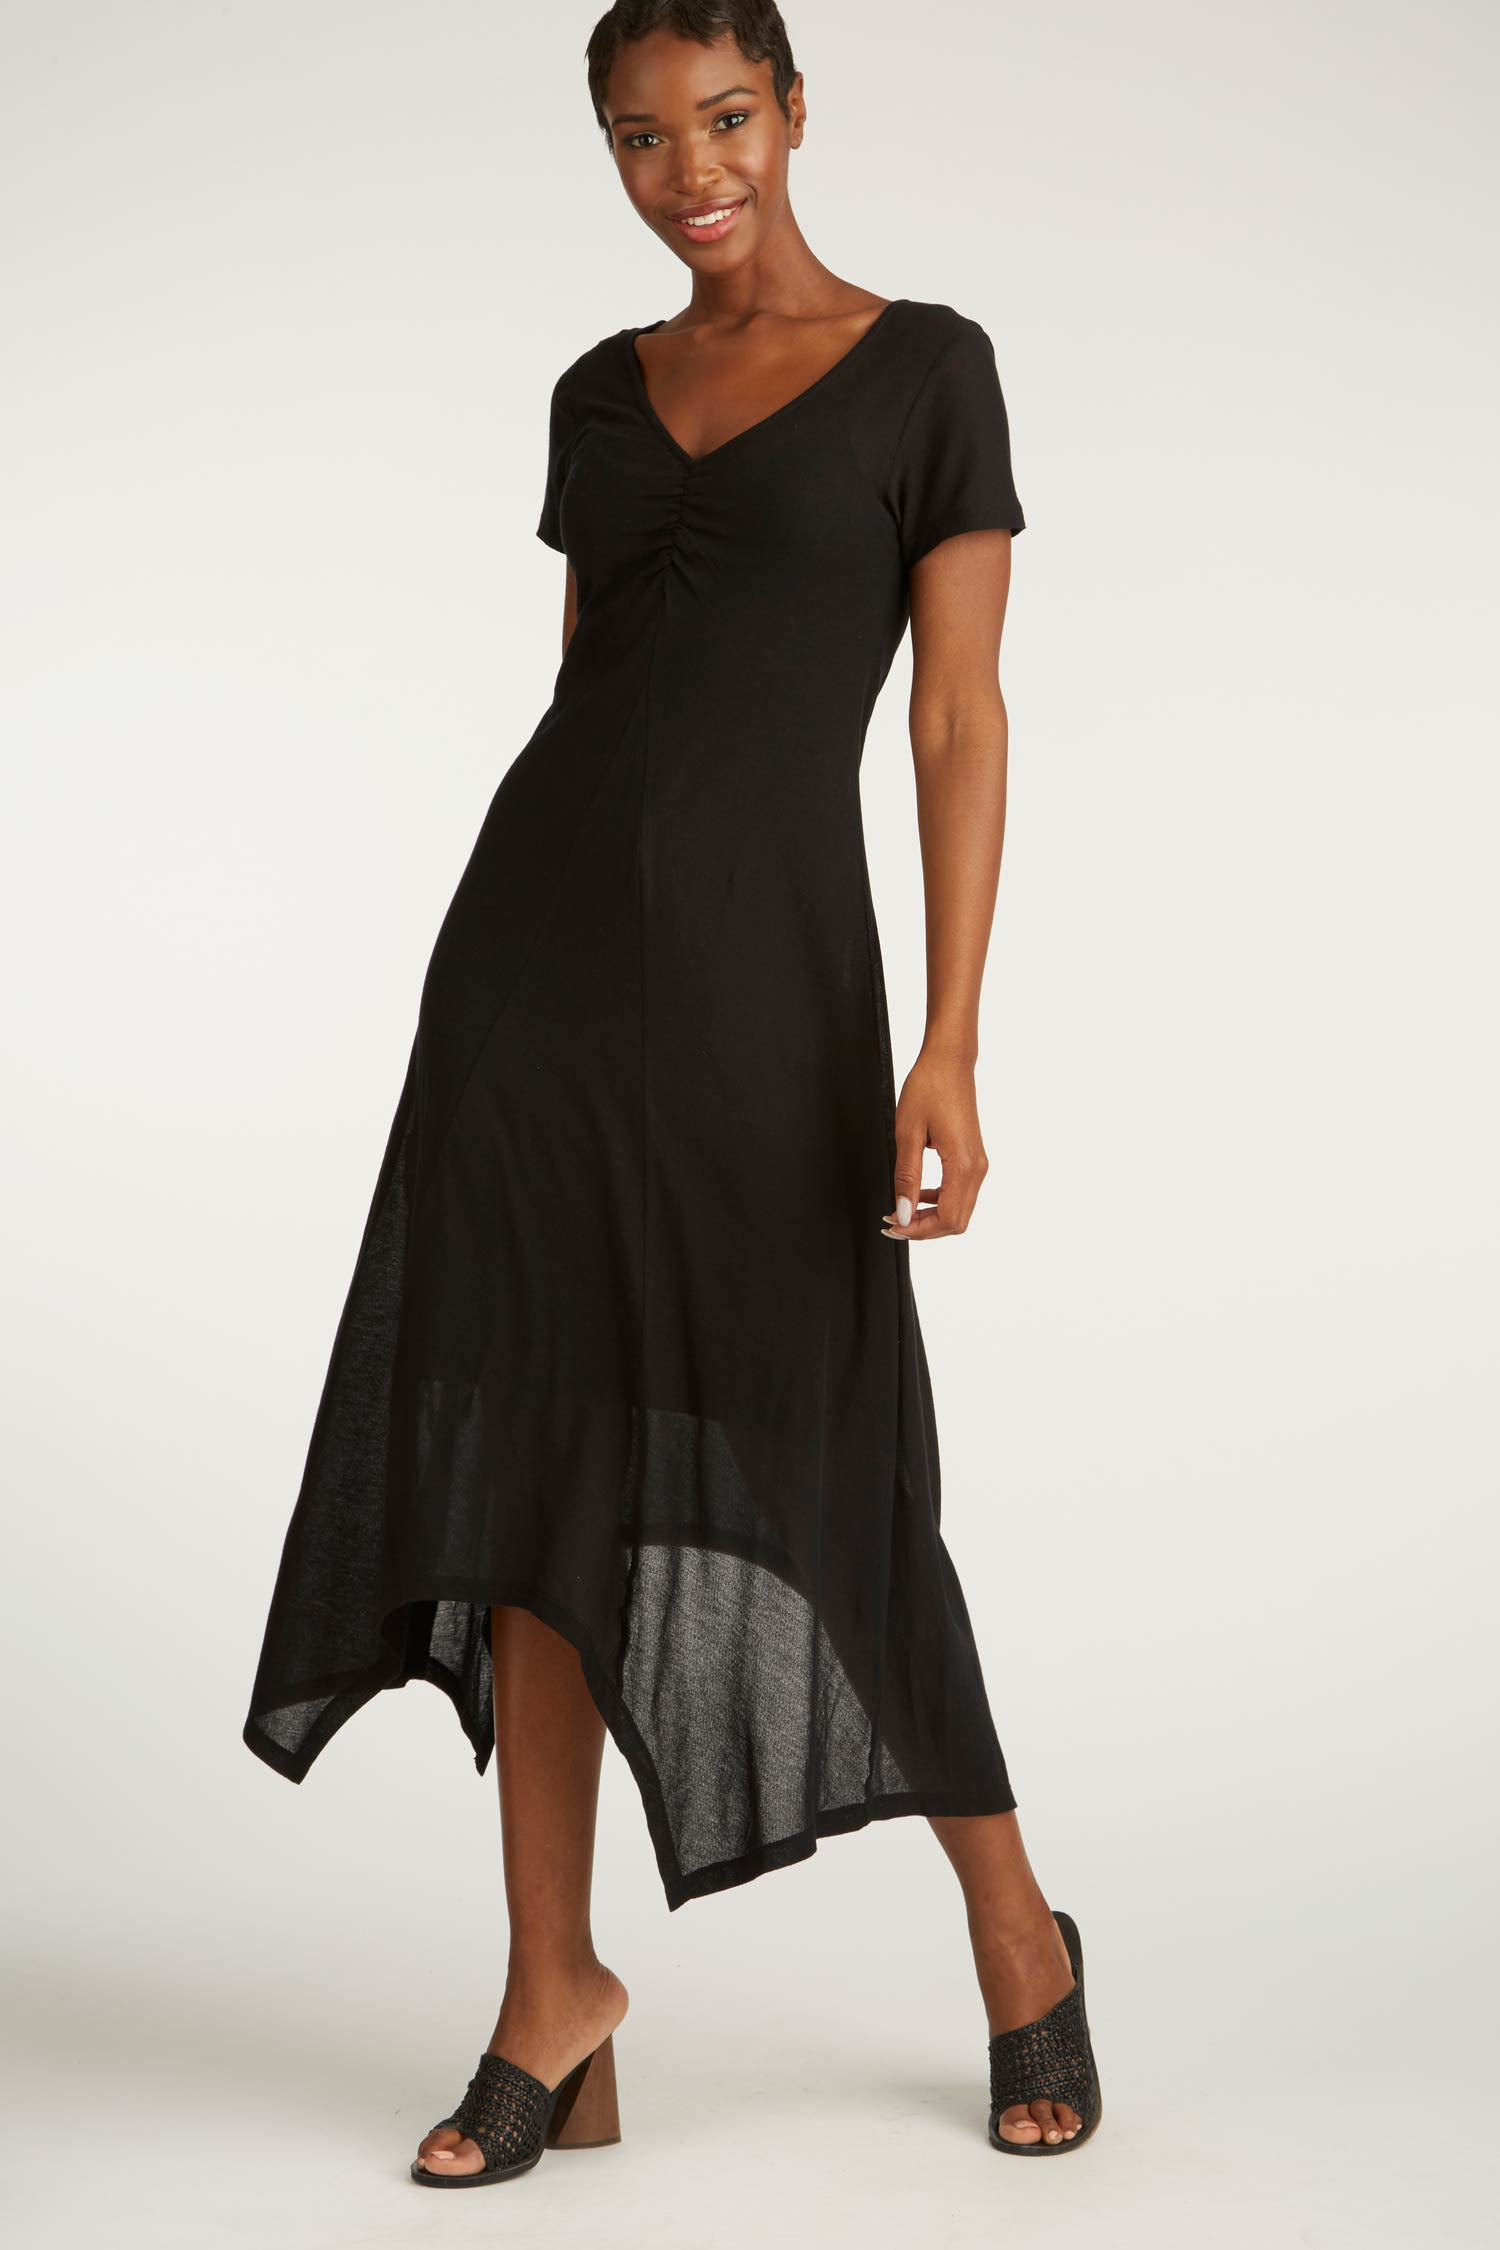 Womens Organic Cotton Dresses | Black Crepe Maxi Dress